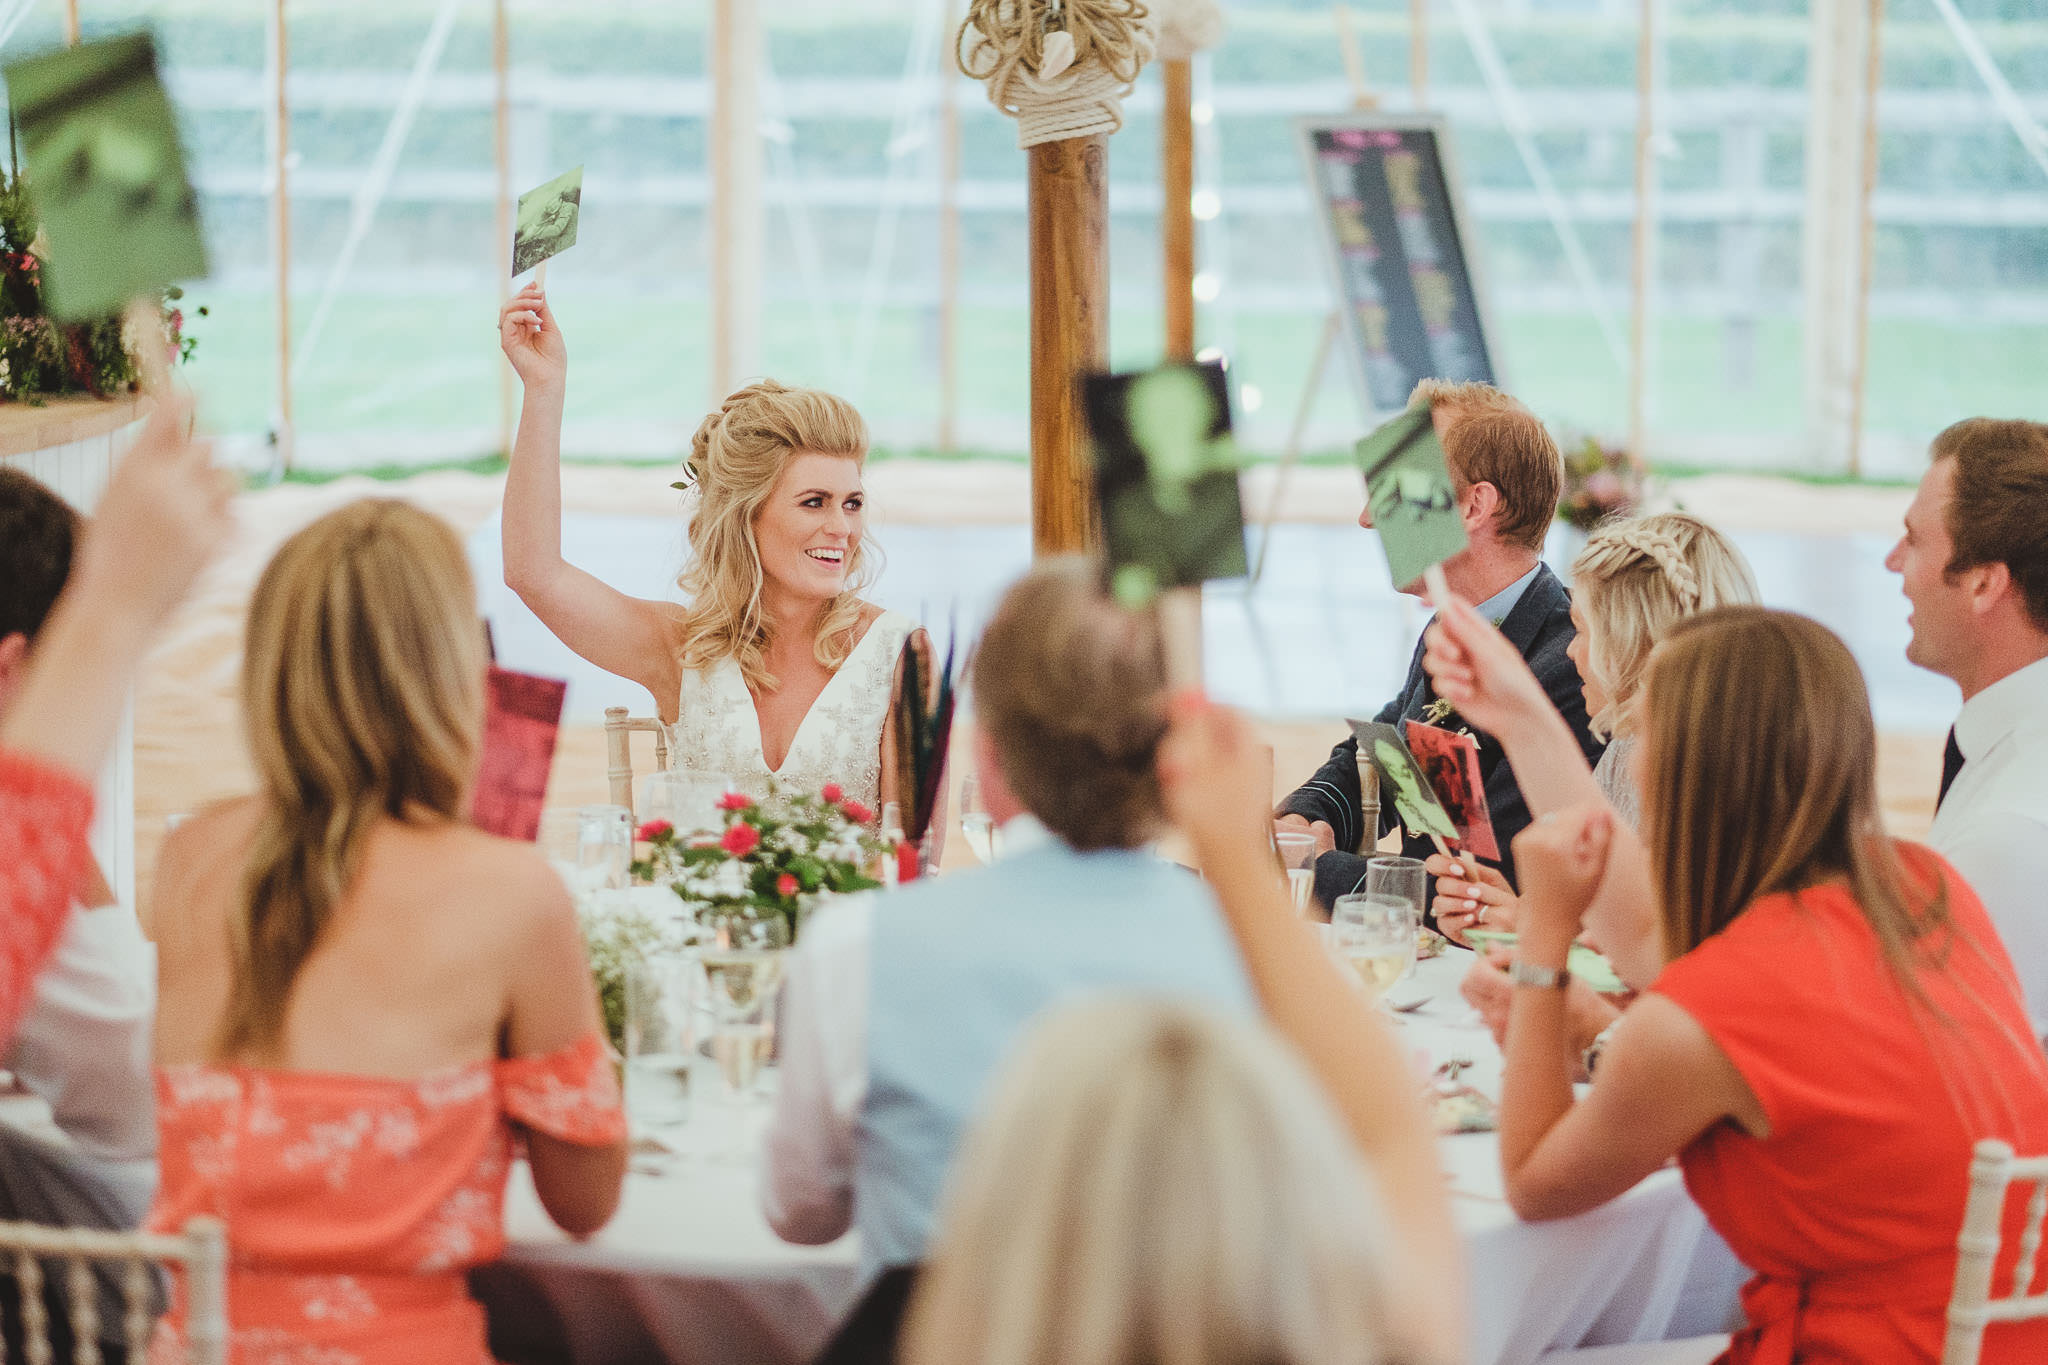 The bride laughs while playing a game during the wedding speeches